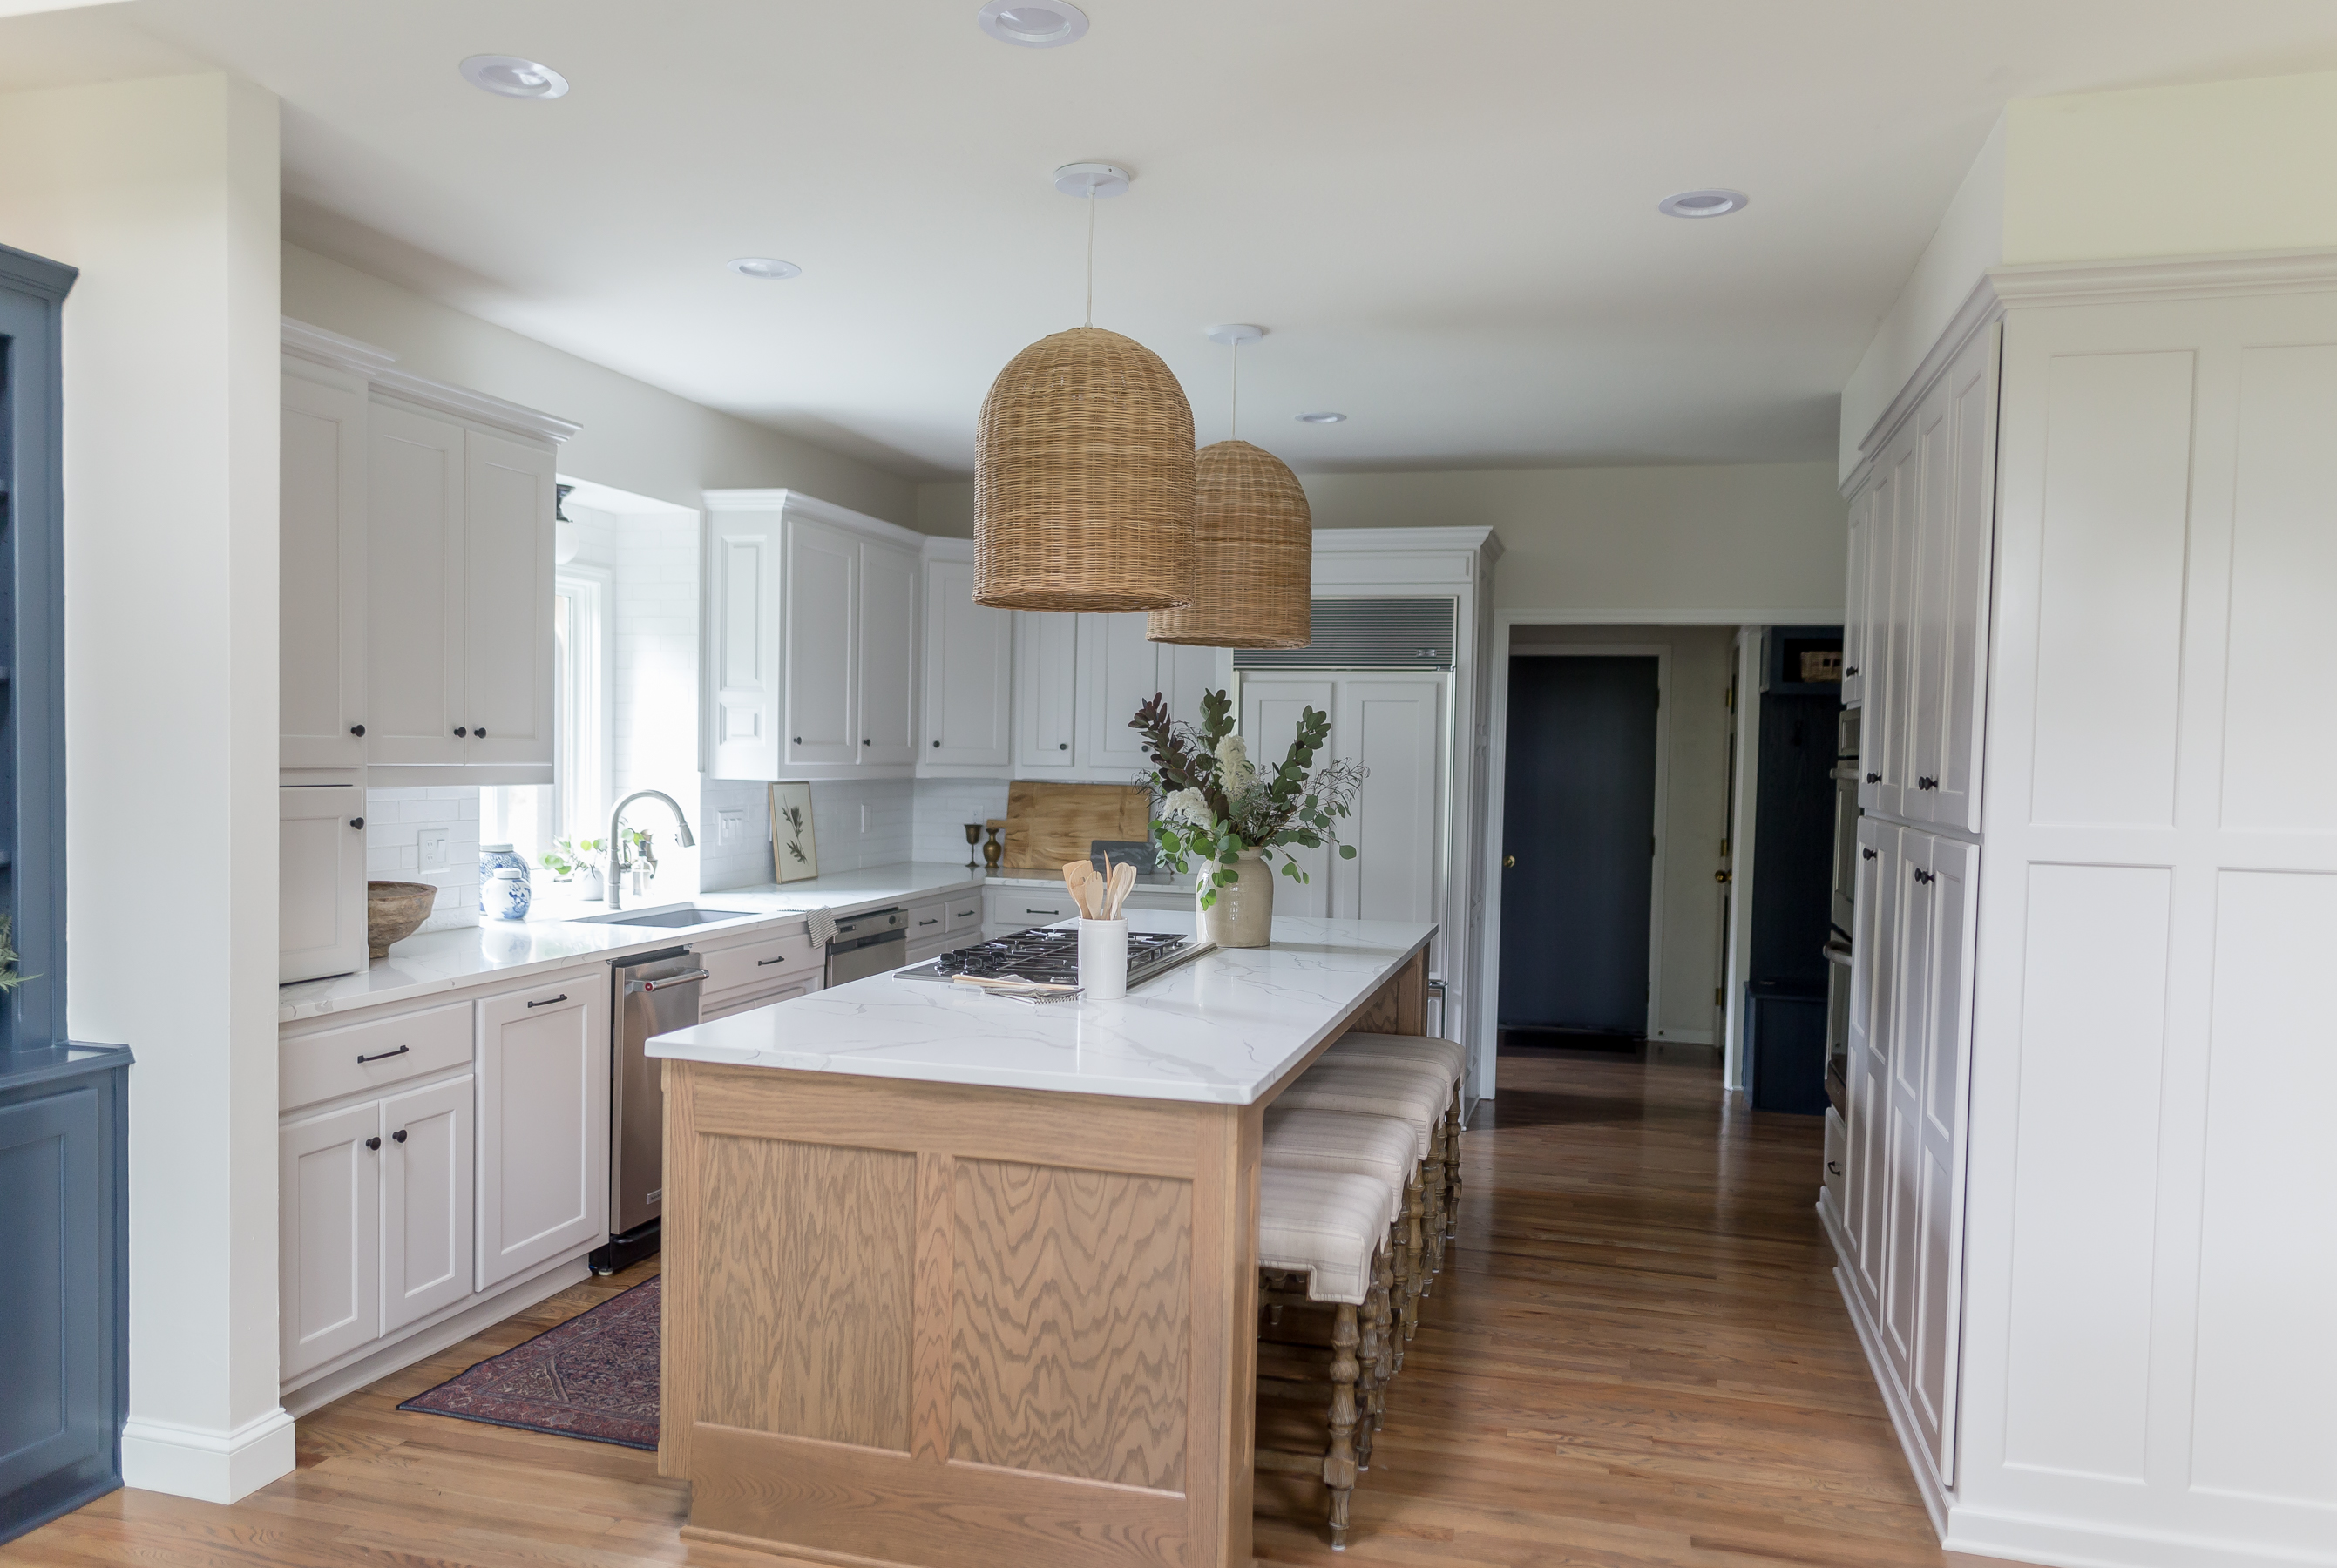 light gray cabinets with oak island, woven pendant lights, marble looking quartz countertops